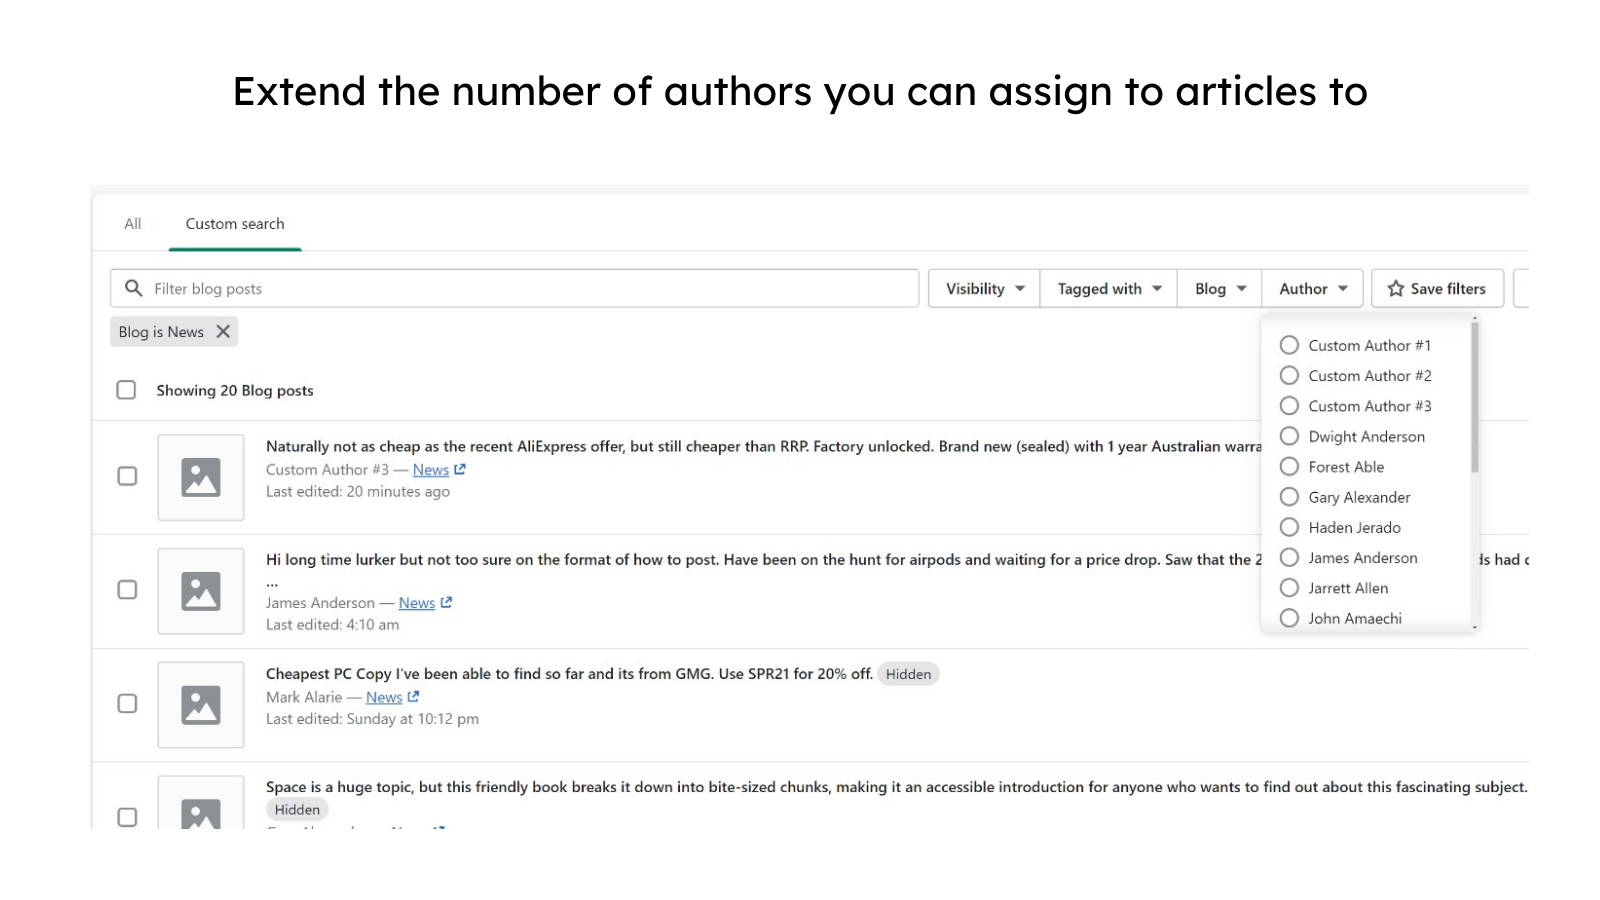 Extend the number of authors you can assign to articles to